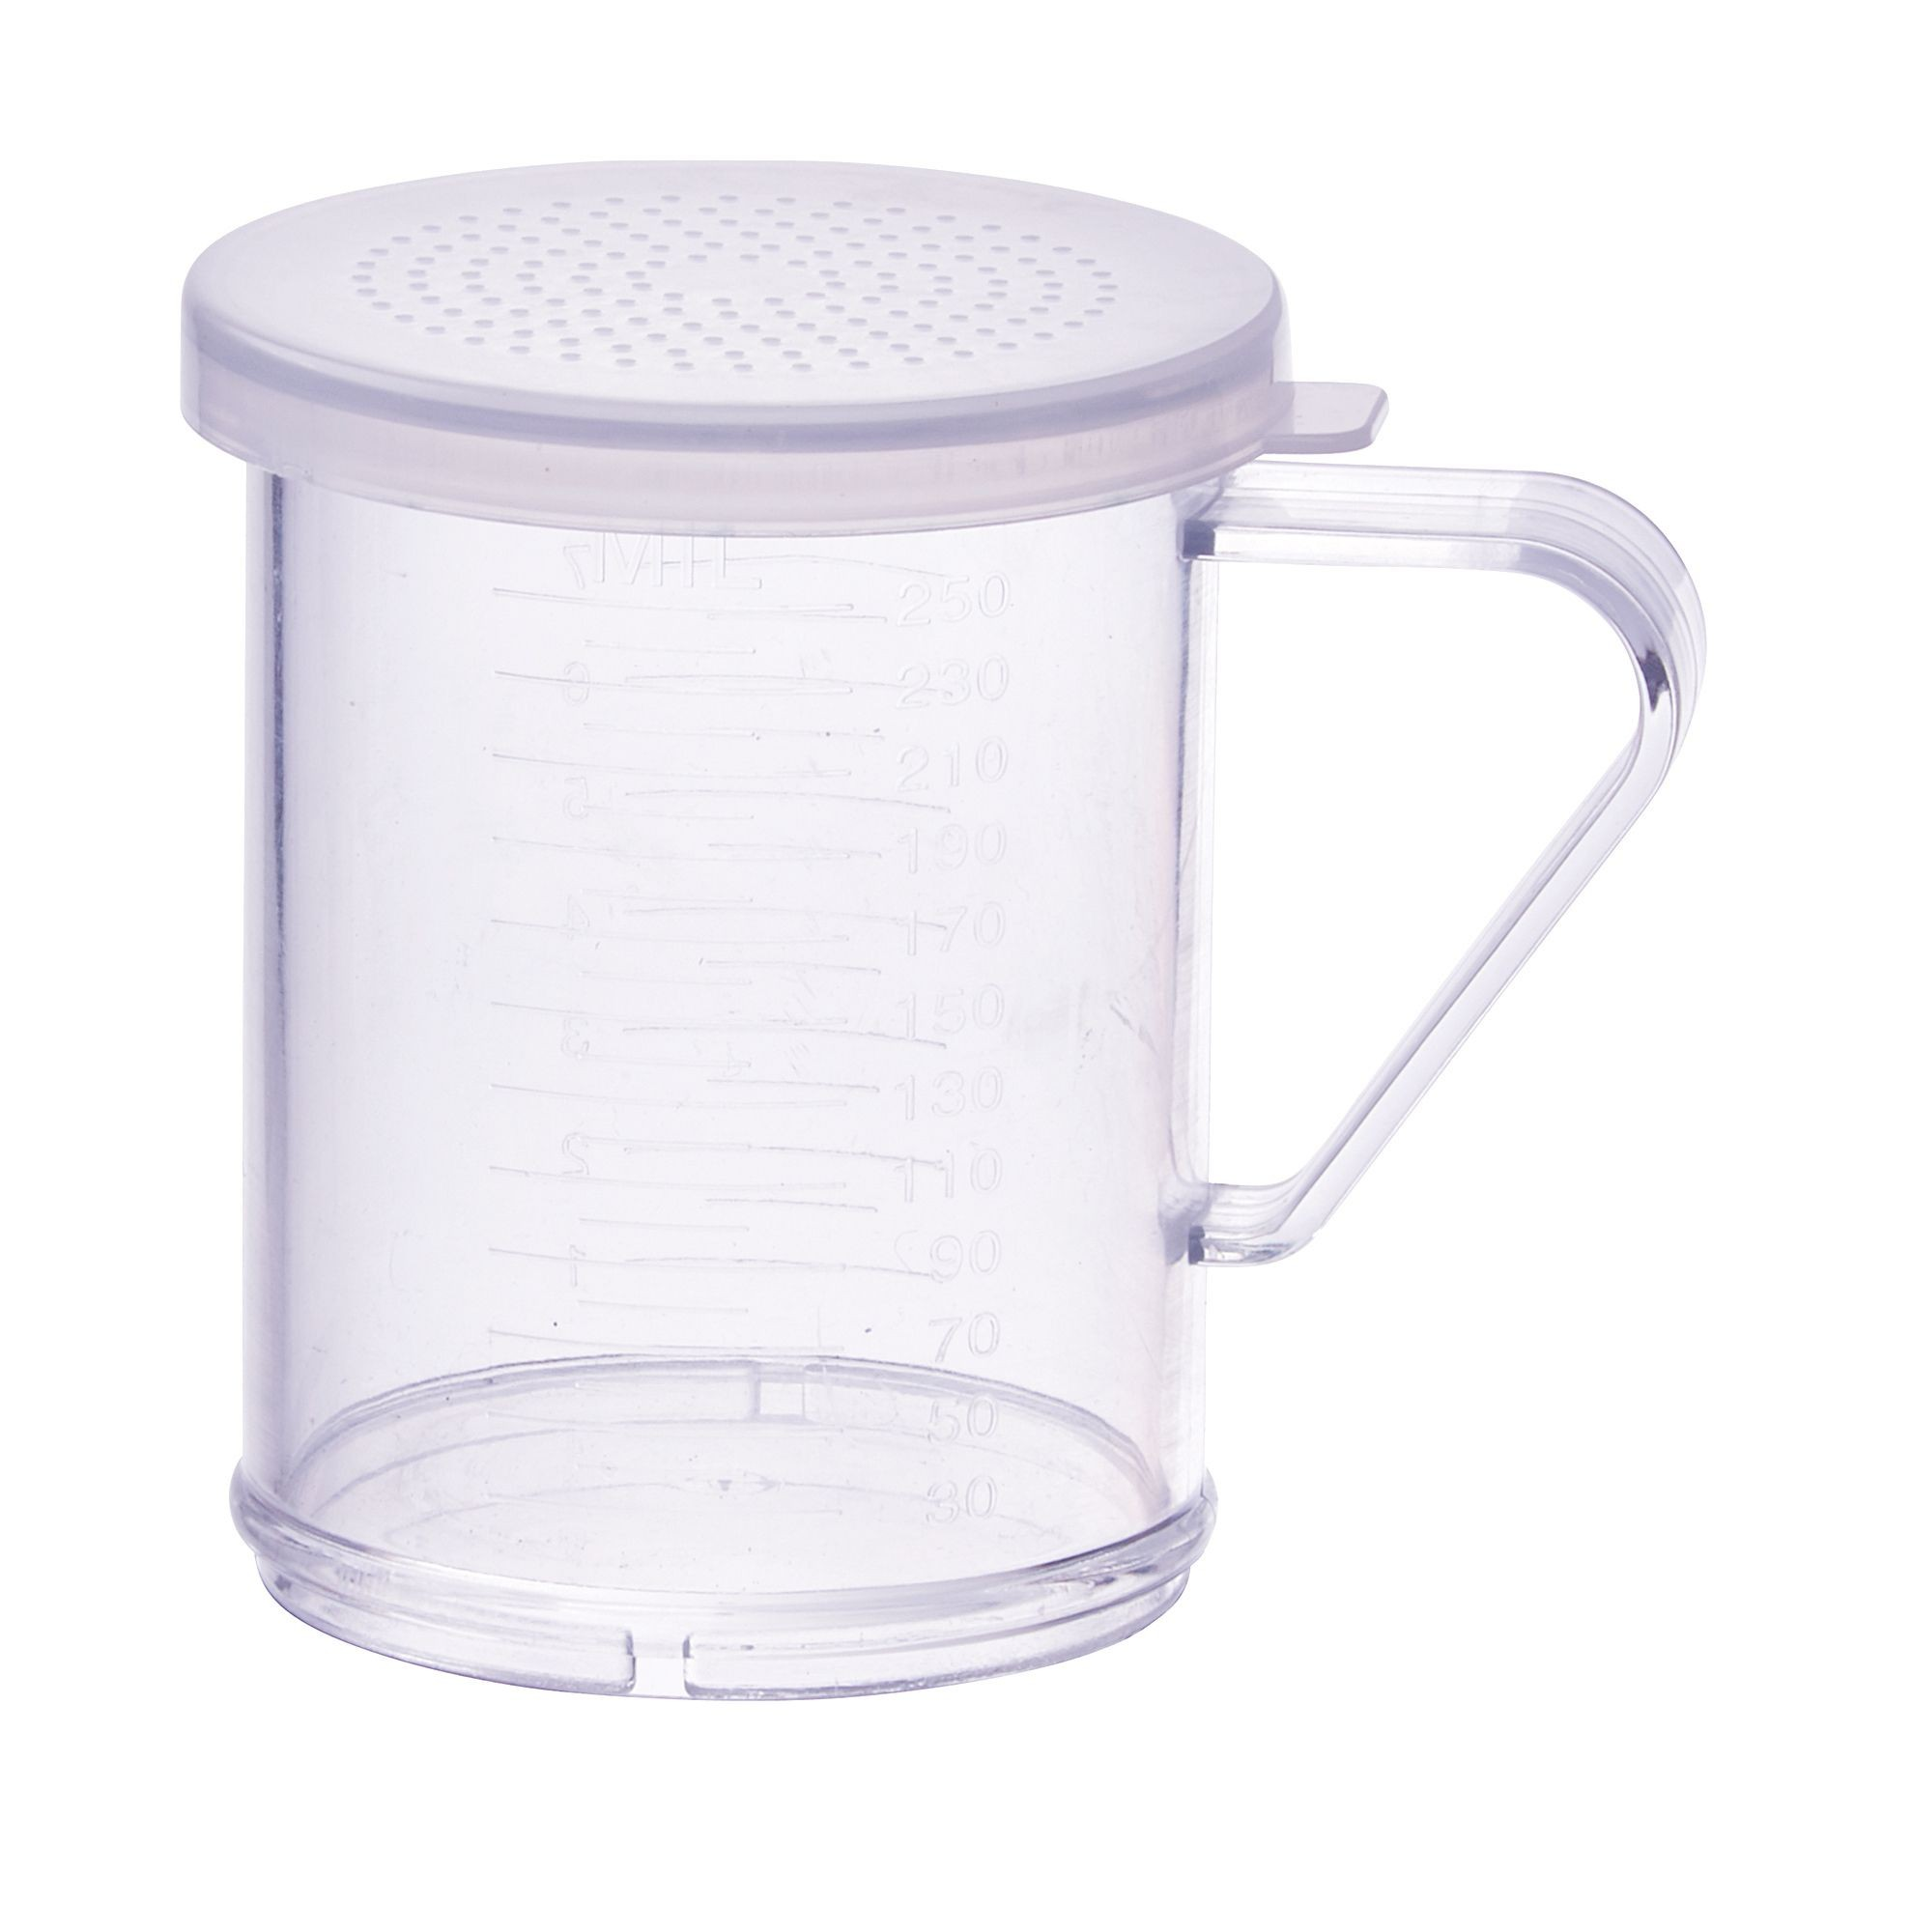 Winco PDG-10CS 10 oz. Polycarbonate Dredge with Clear Snap-On Lid, Small Holes